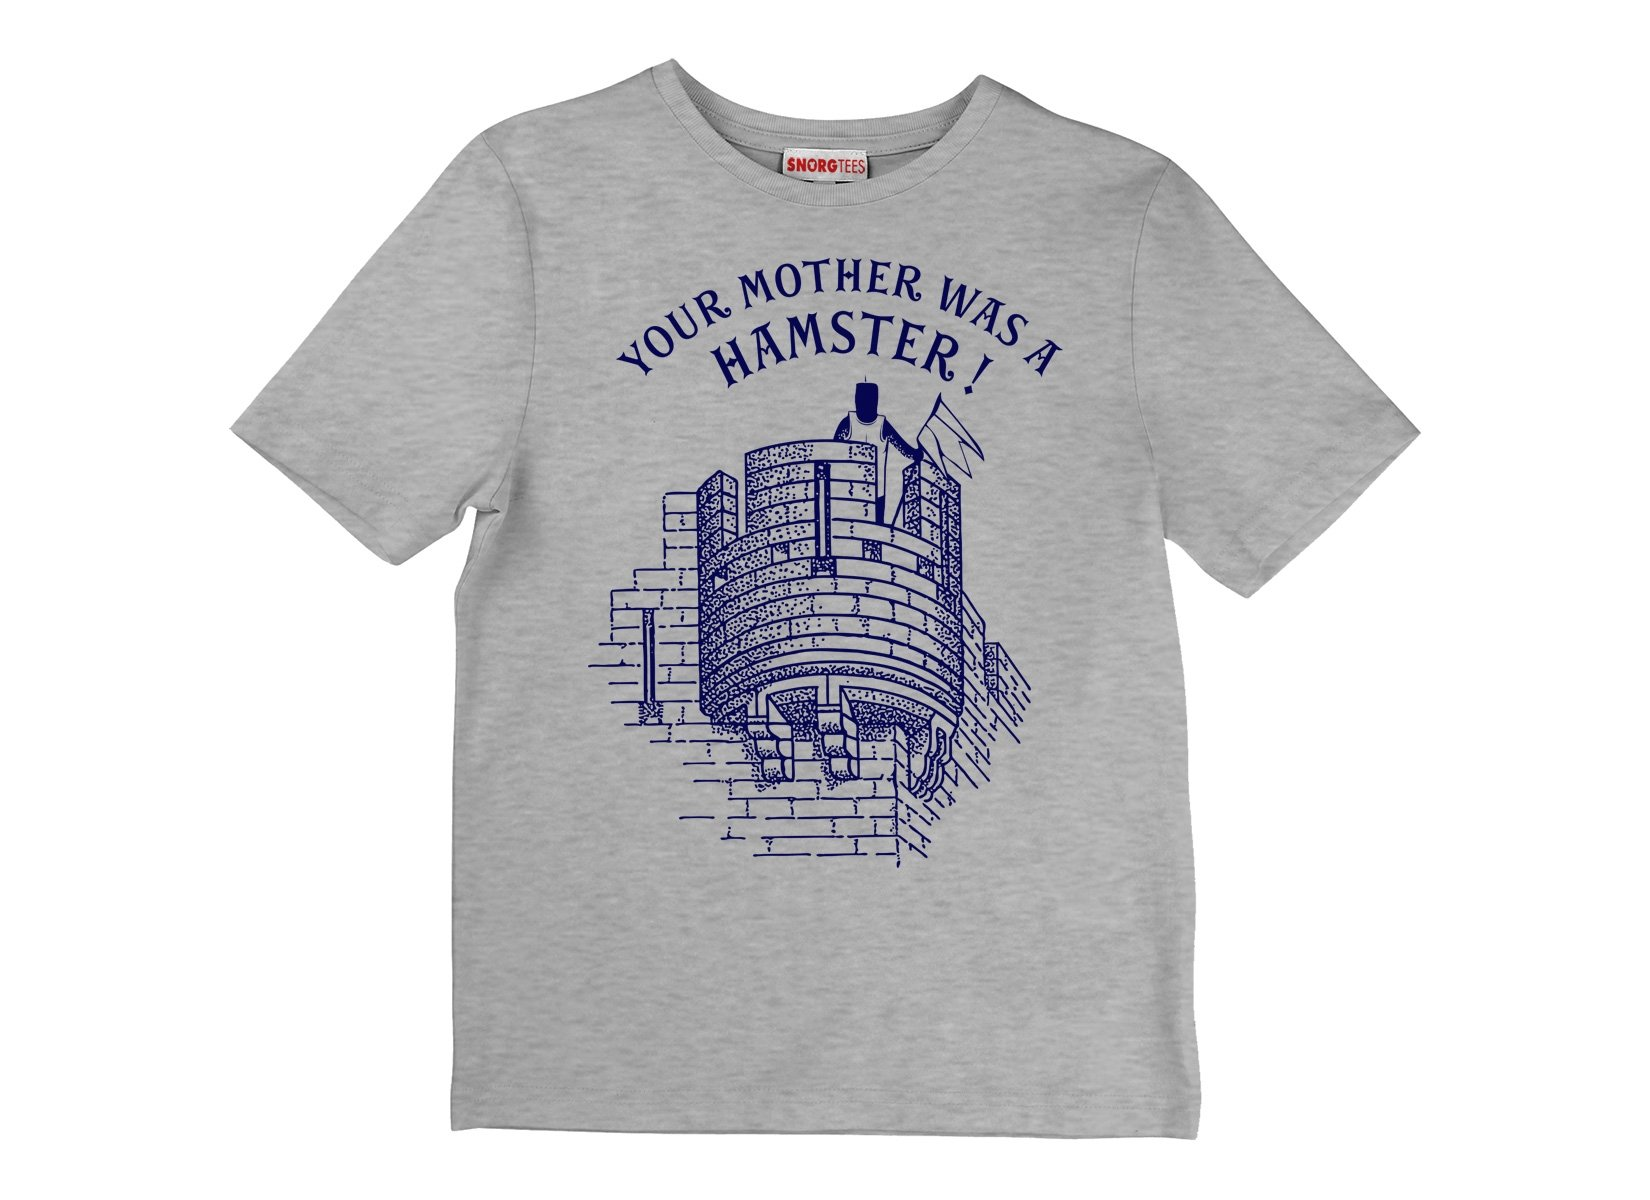 Your Mother Was A Hamster on Kids T-Shirt